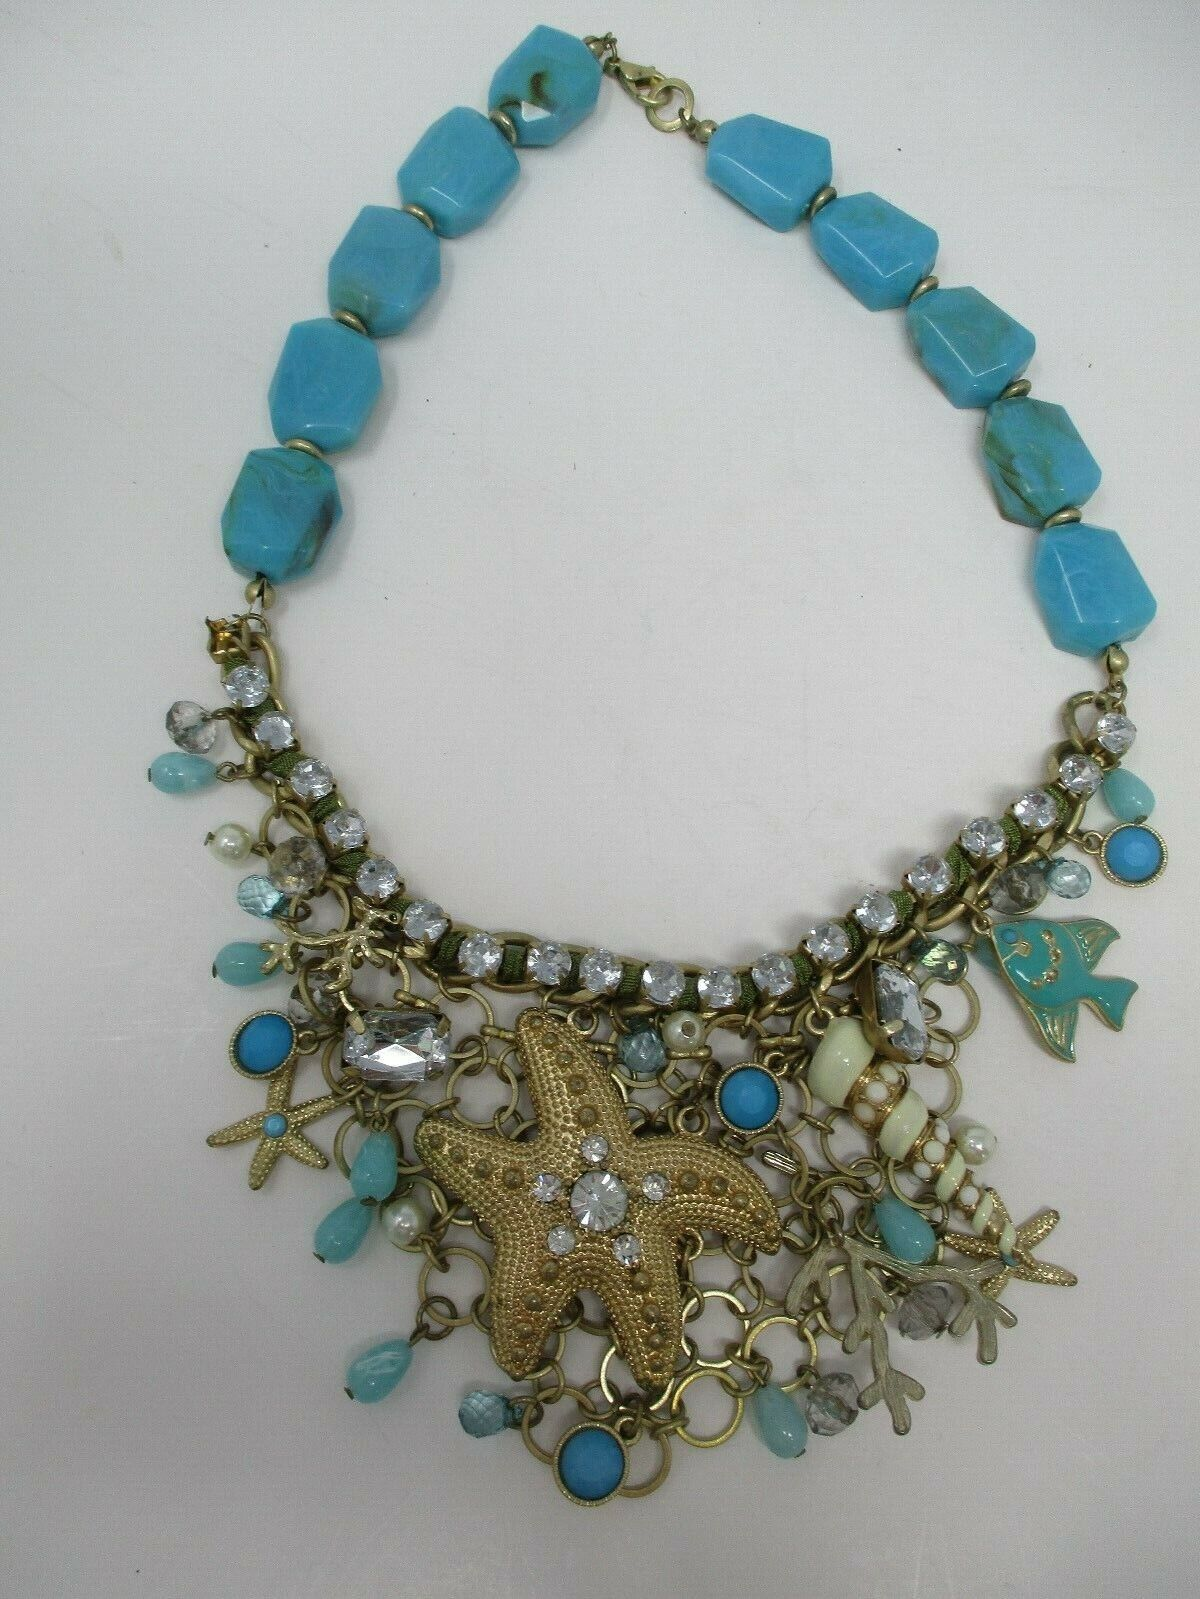 Vintage Aqua Bead And Rhinestone Necklace With Nautical Charms